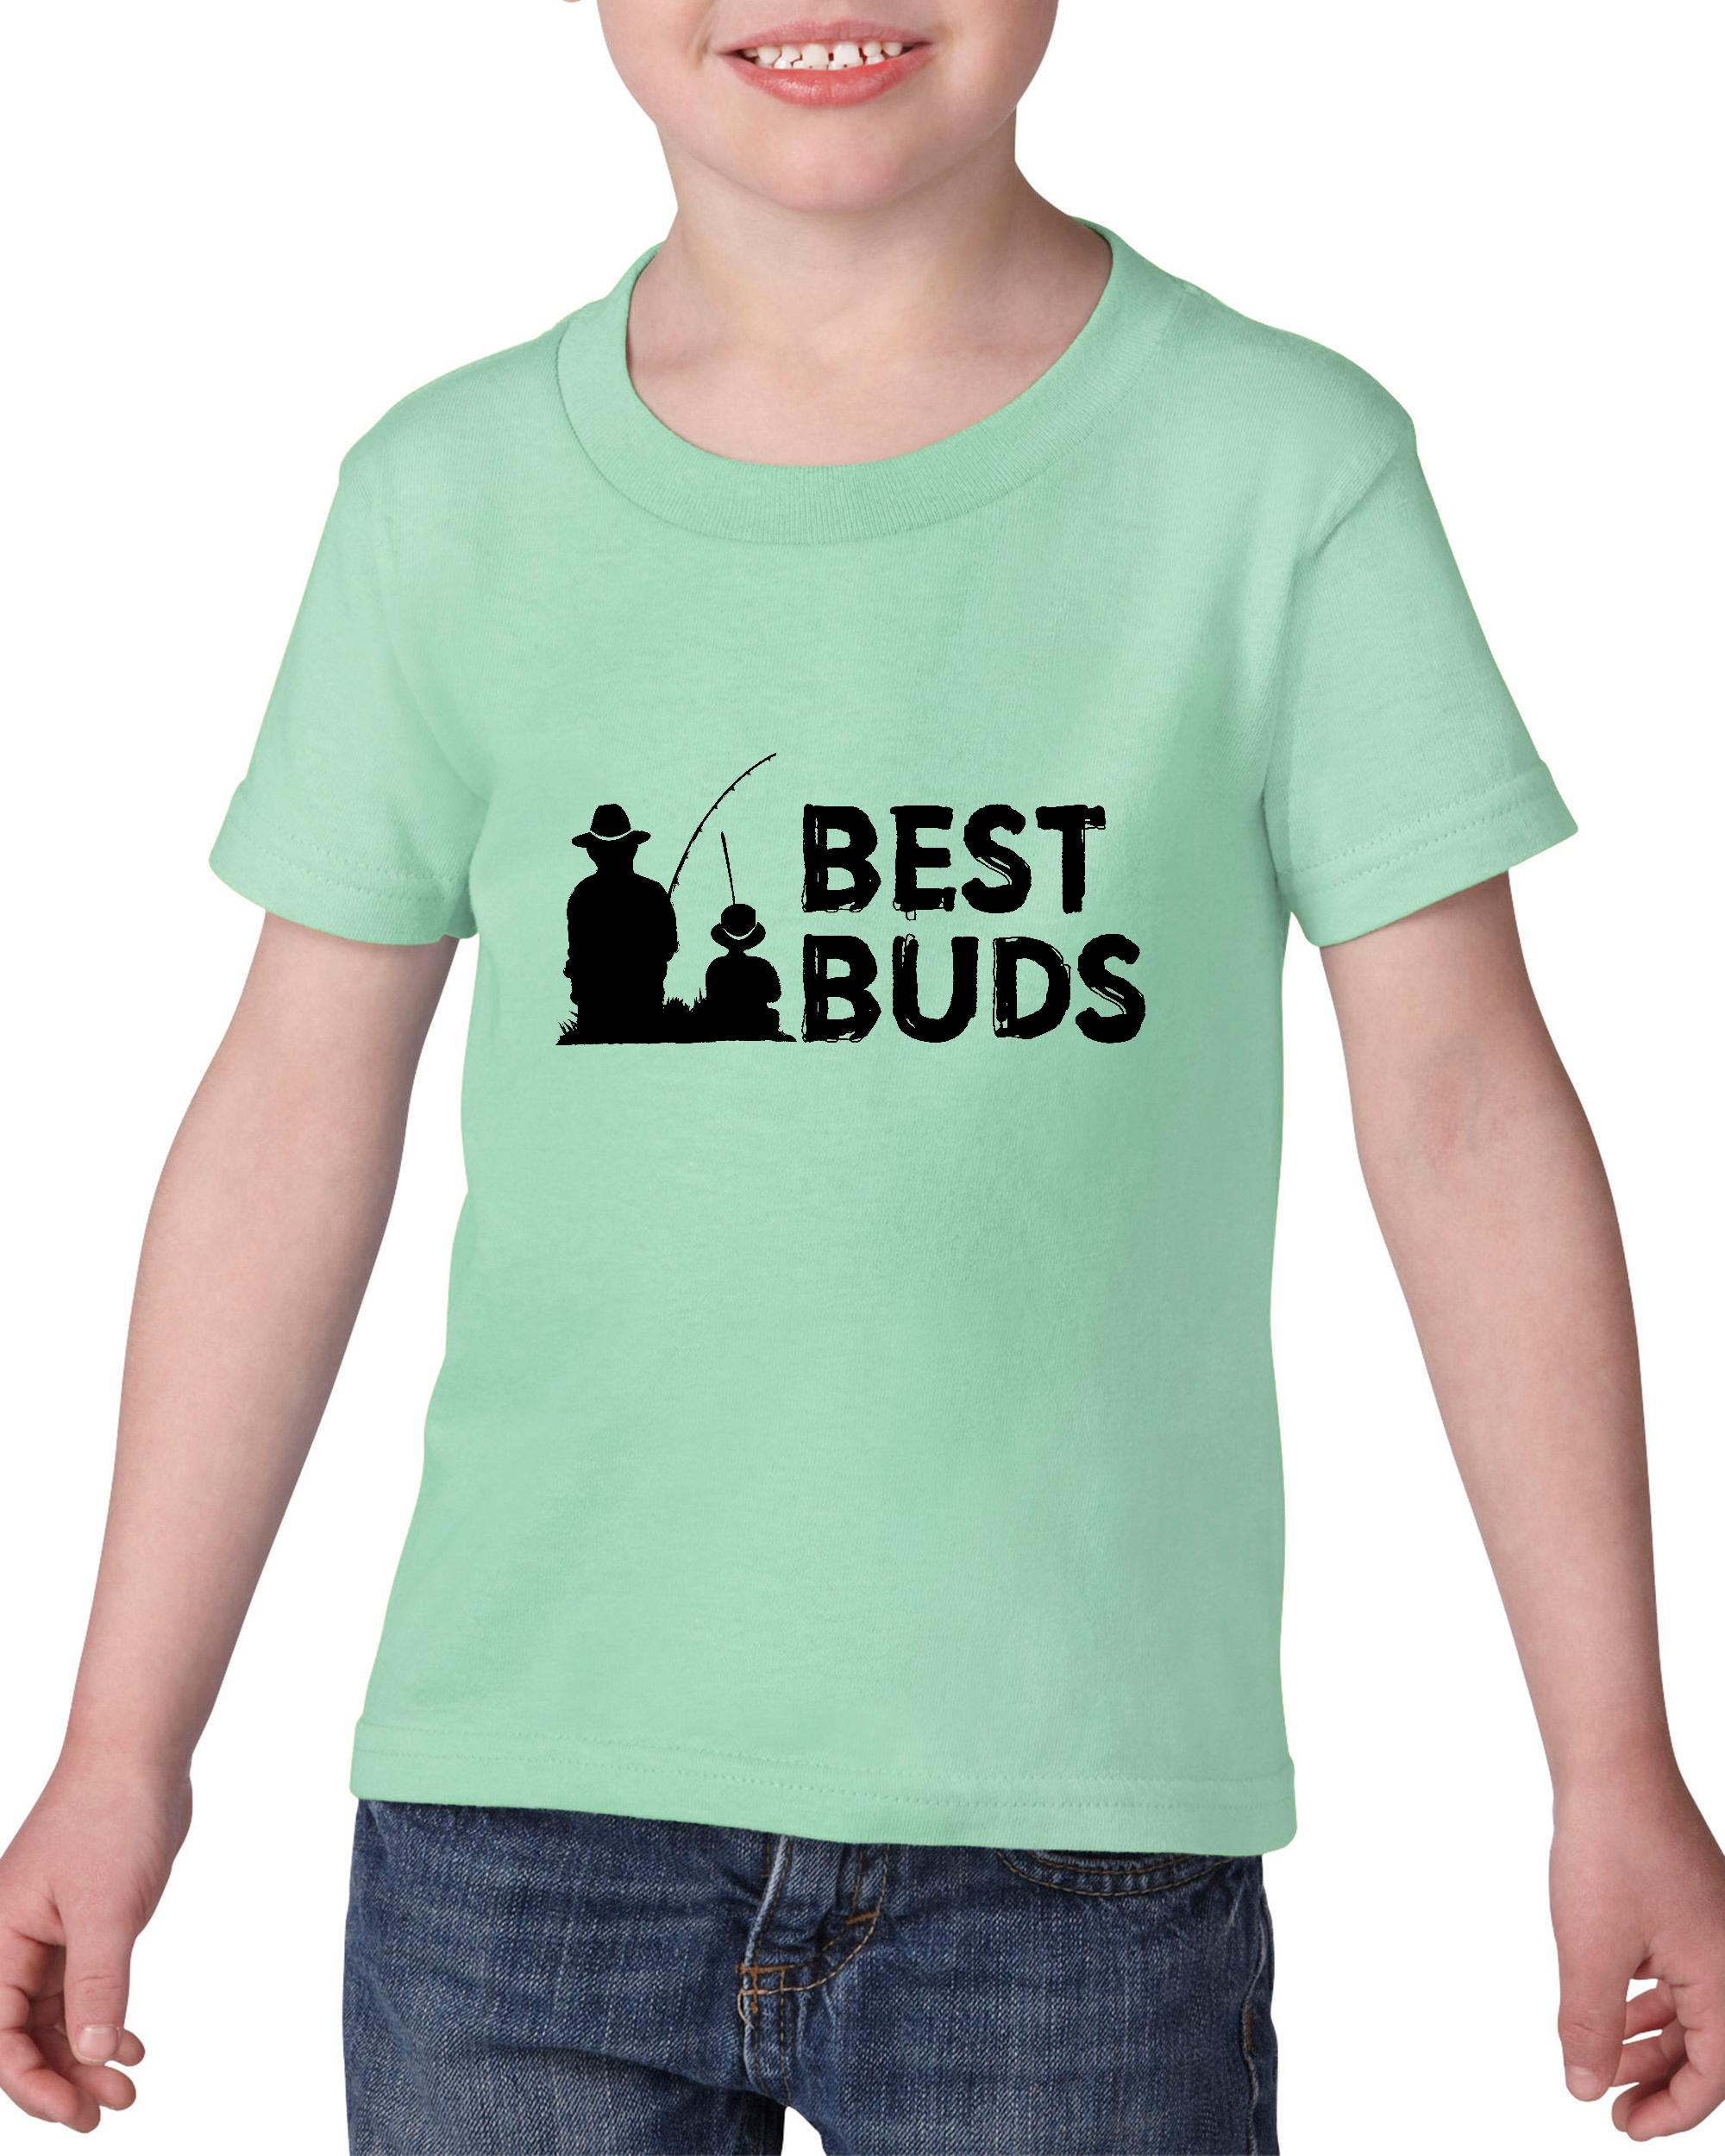 Artix Best Buds Fishing Buddy Grandpa & Grandso Best Awesome Family Togetherness Funny Gift 4 Retirement Fathers Day Birthday Heavy Cotton Toddler Kids T-Shirt Tee Clothing